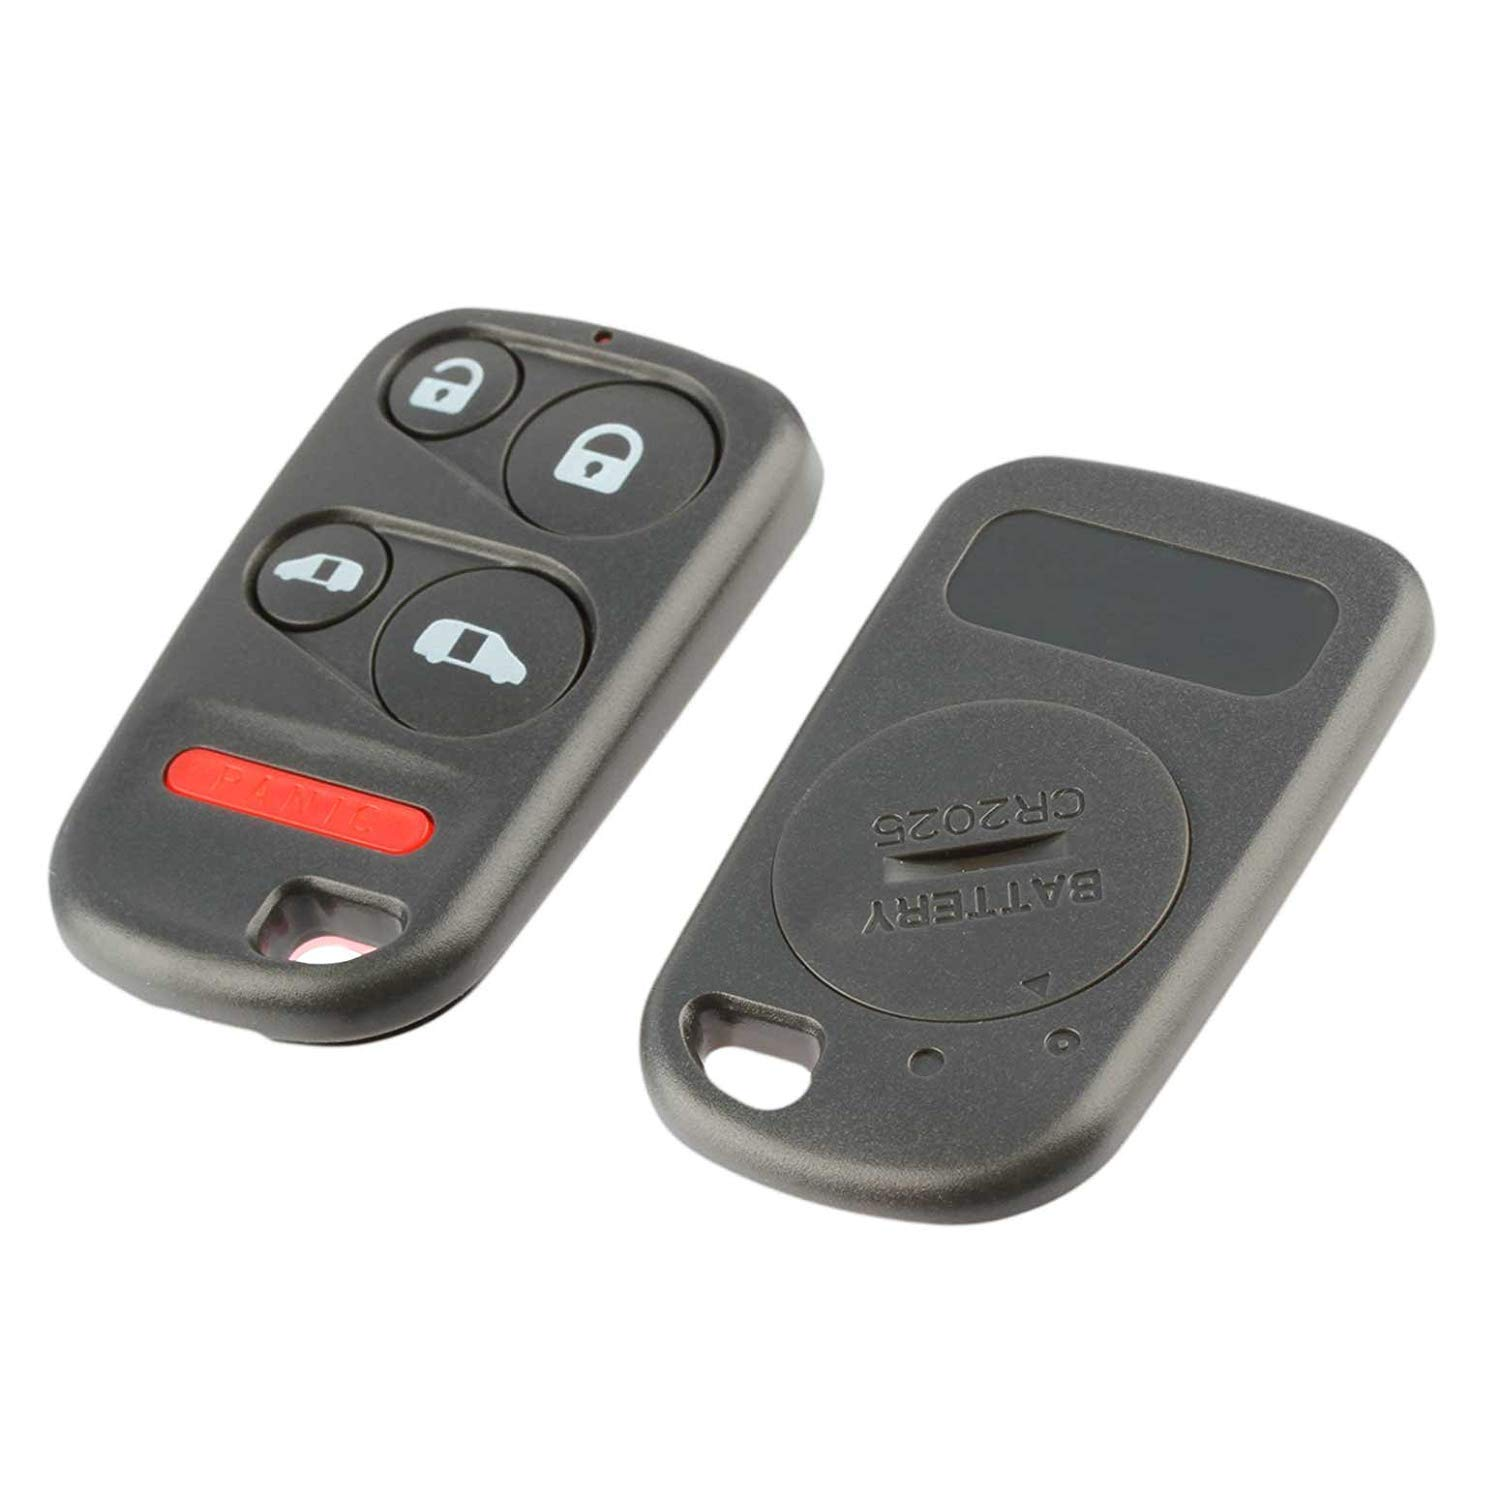 Shell Case /& Pad fits 1999 2000 2001 2002 2003 2004 Honda Odyssey Key Fob Keyless Entry Remote USARemote OUCG8D-440H-A, E4EG8DN